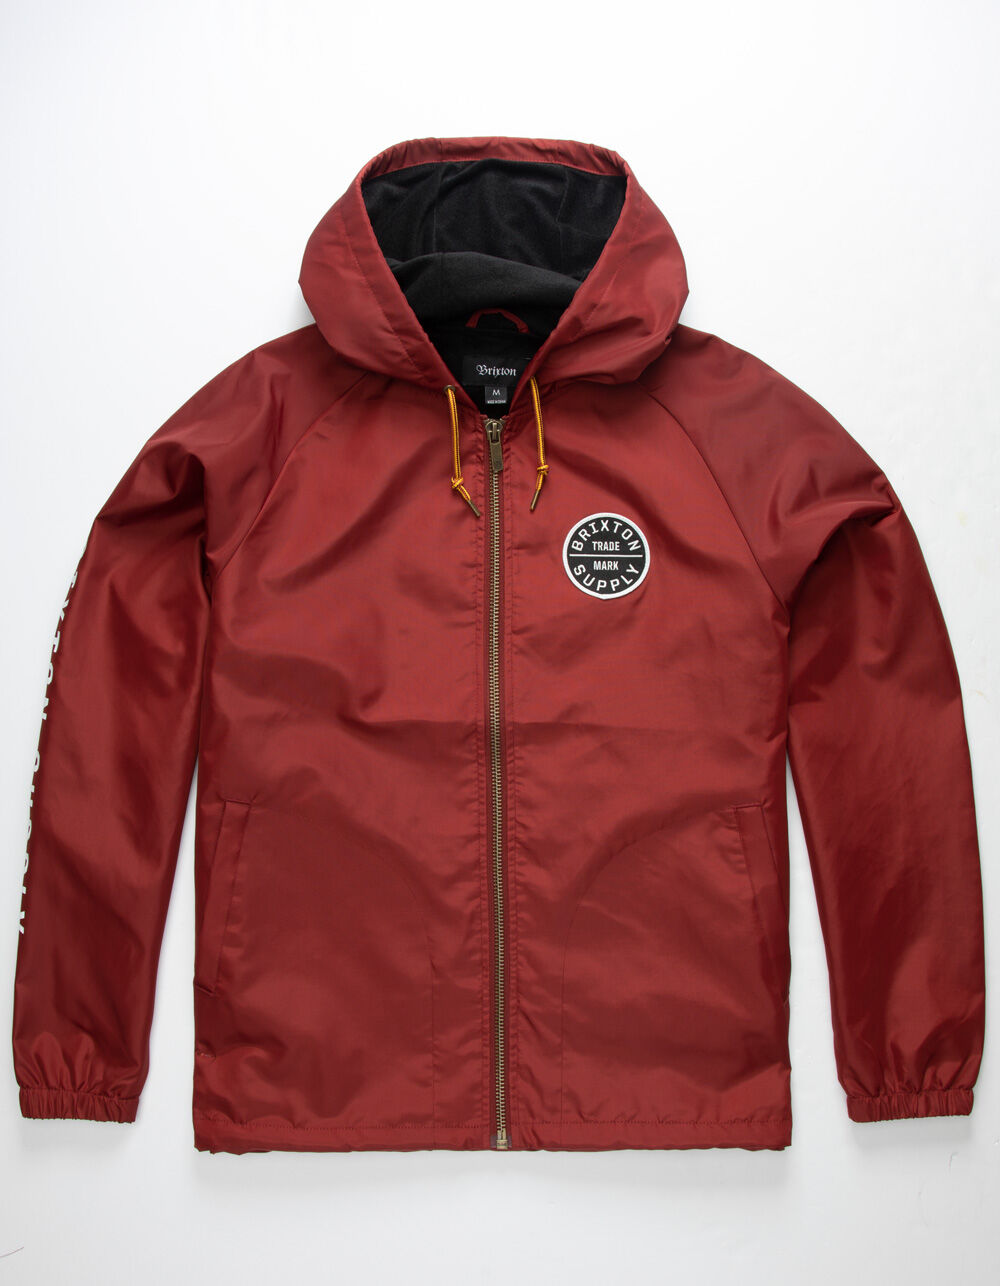 BRIXTON Oath II Burgundy Windbreaker Jacket